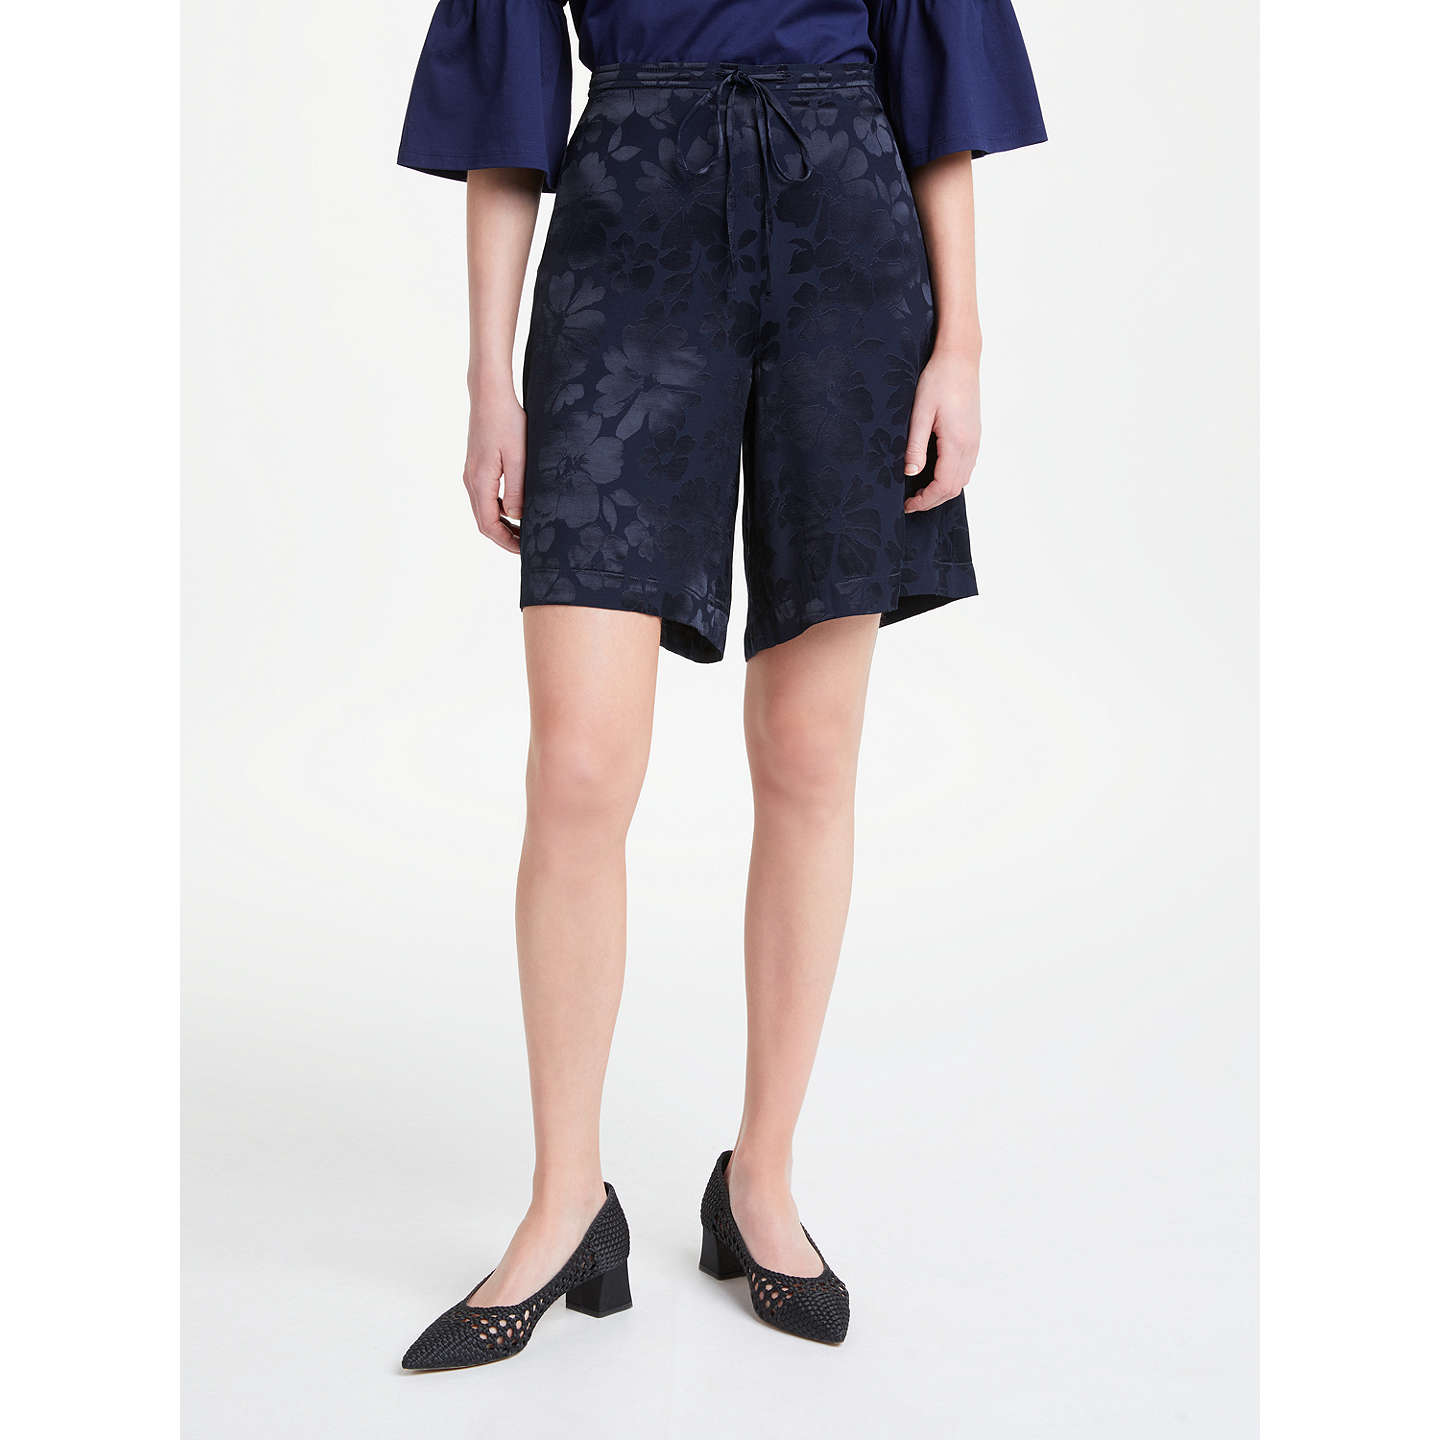 Stean Midnight Floral Jacquard City Shorts Finery wsTKXT76y4